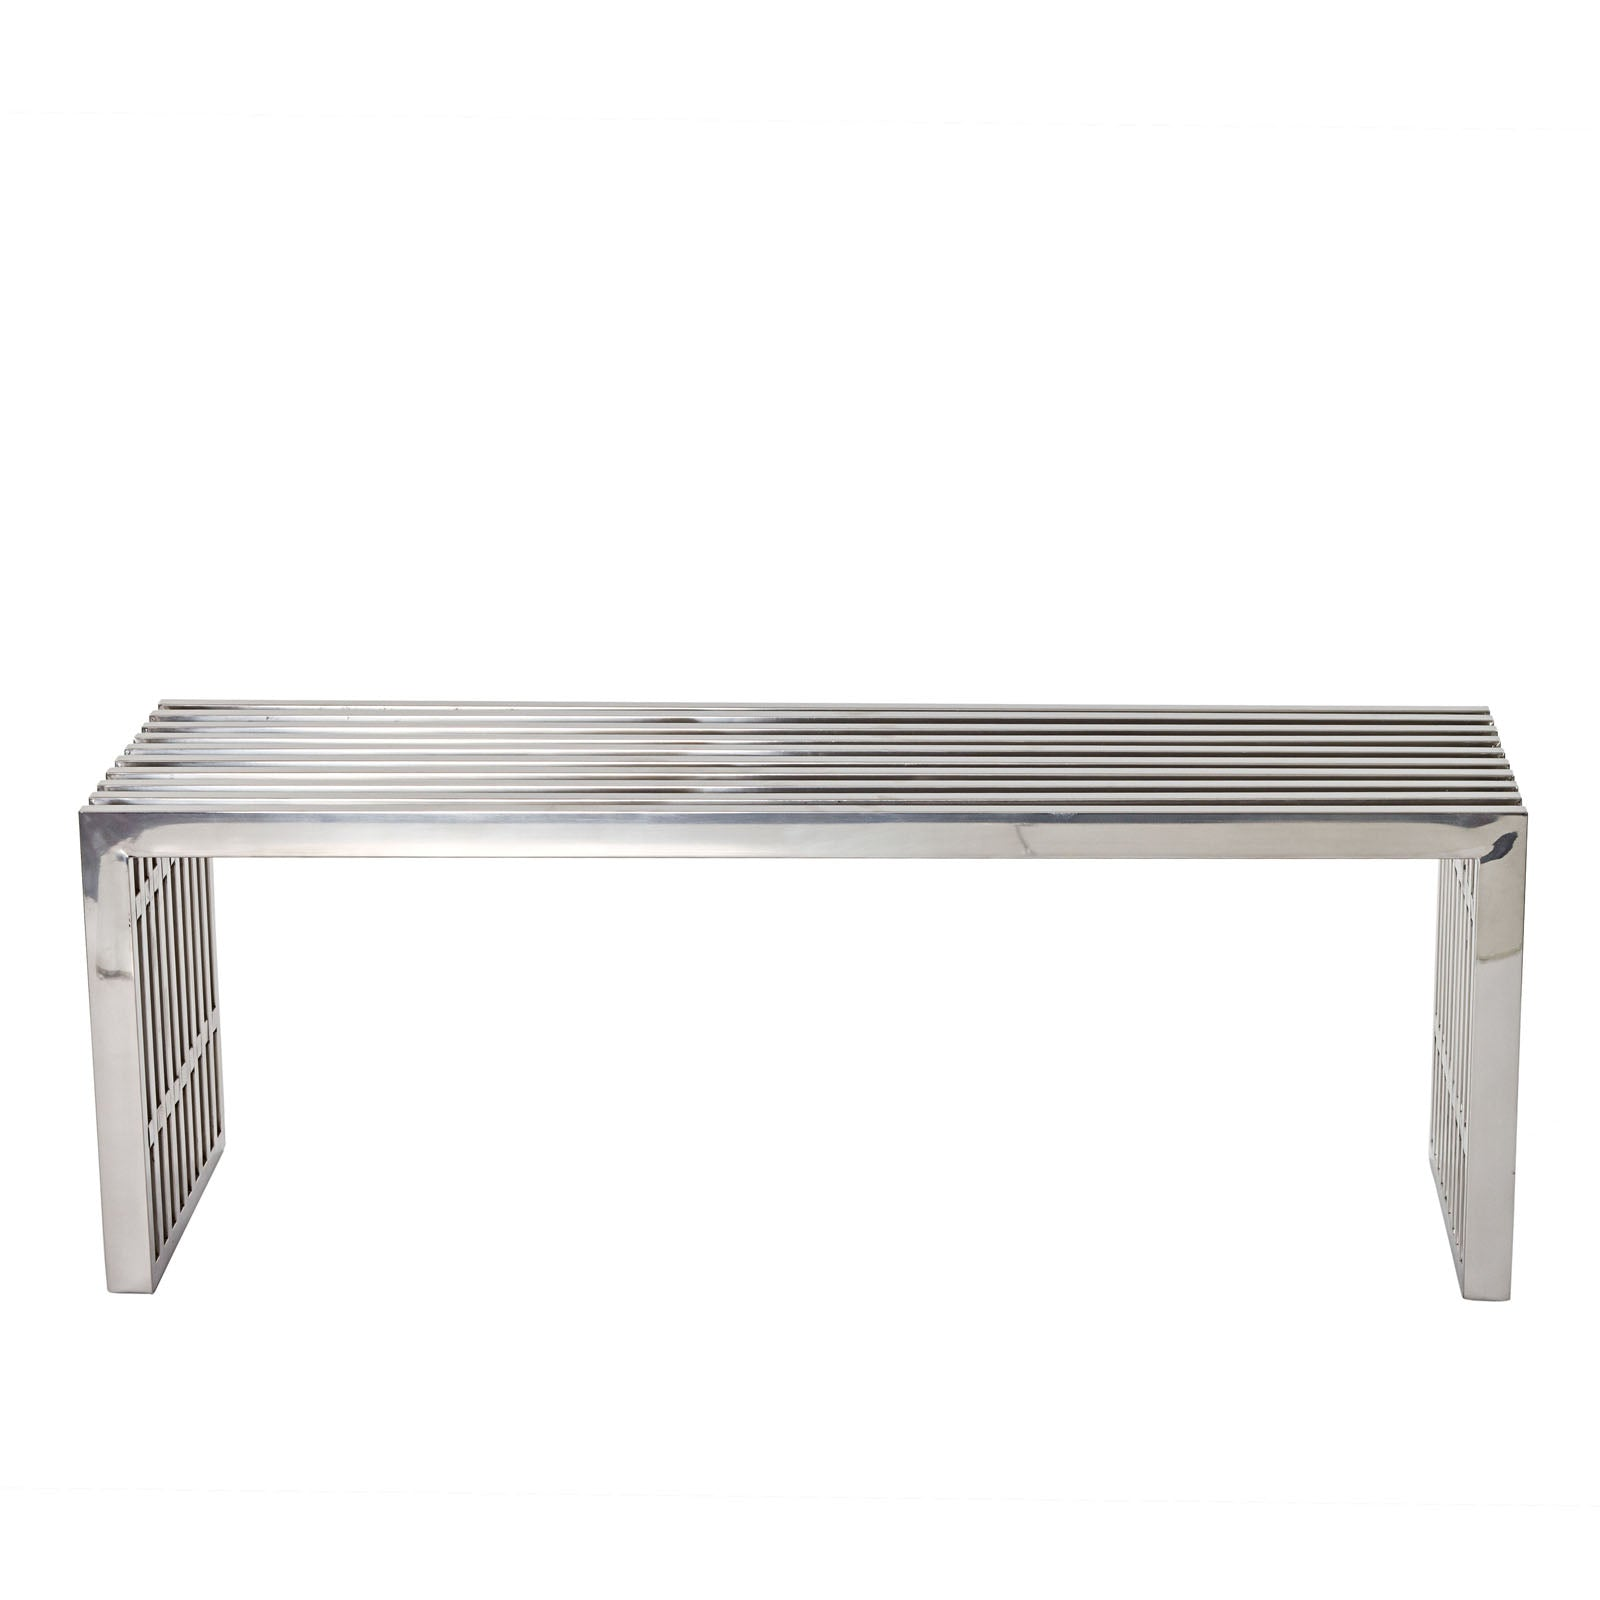 Gridiron Medium Stainless Steel Bench